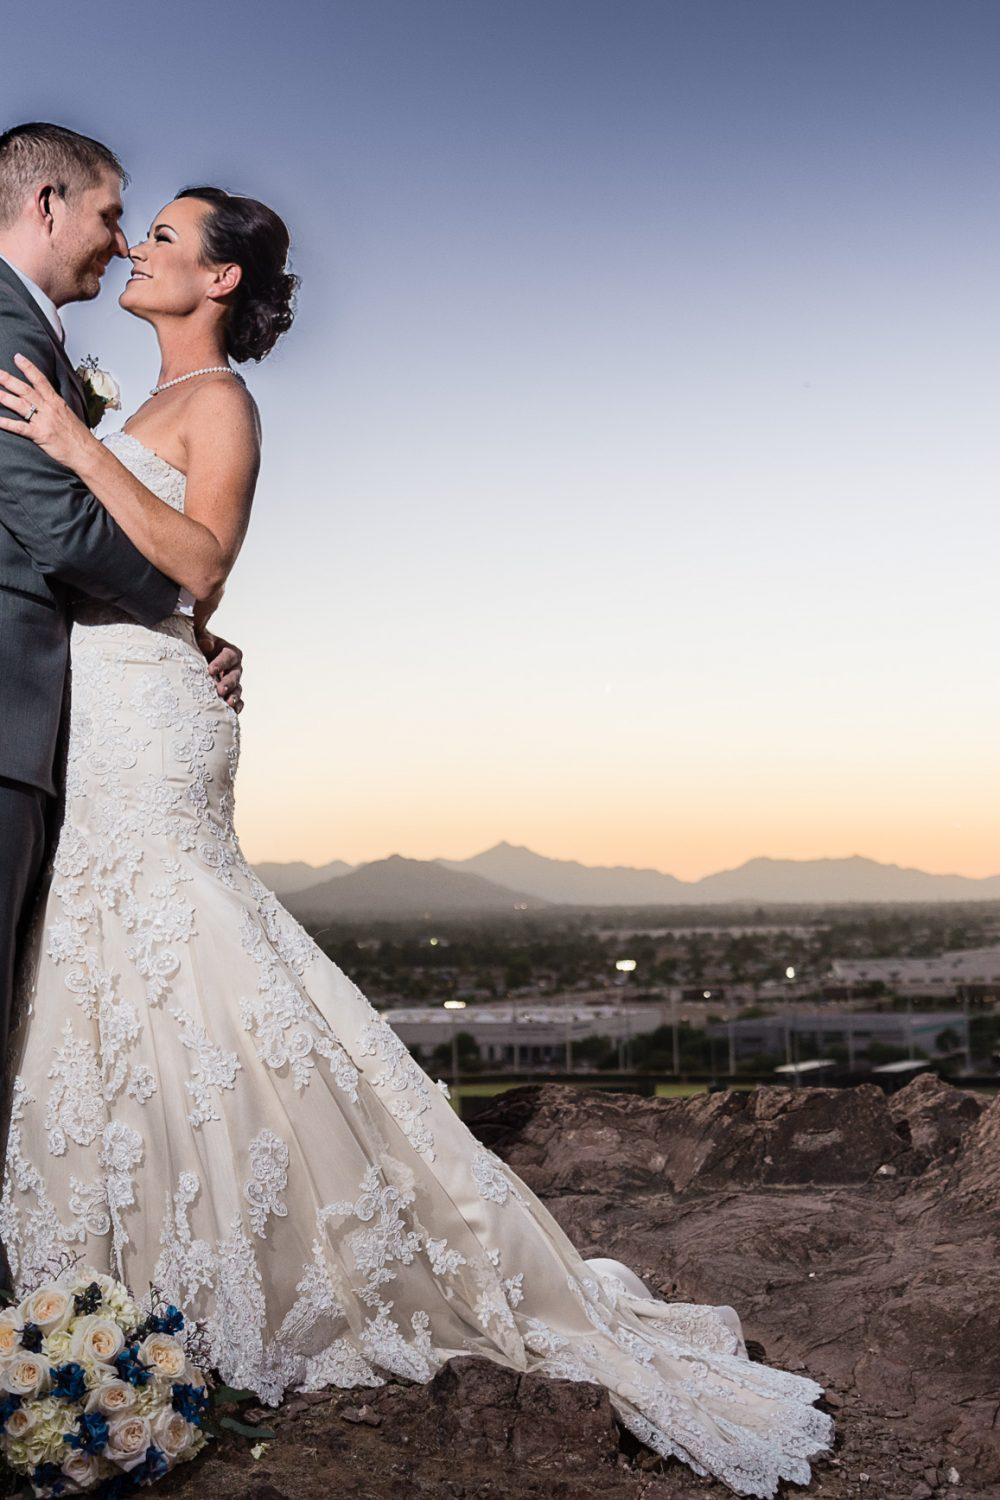 Awesome sunset wedding photo